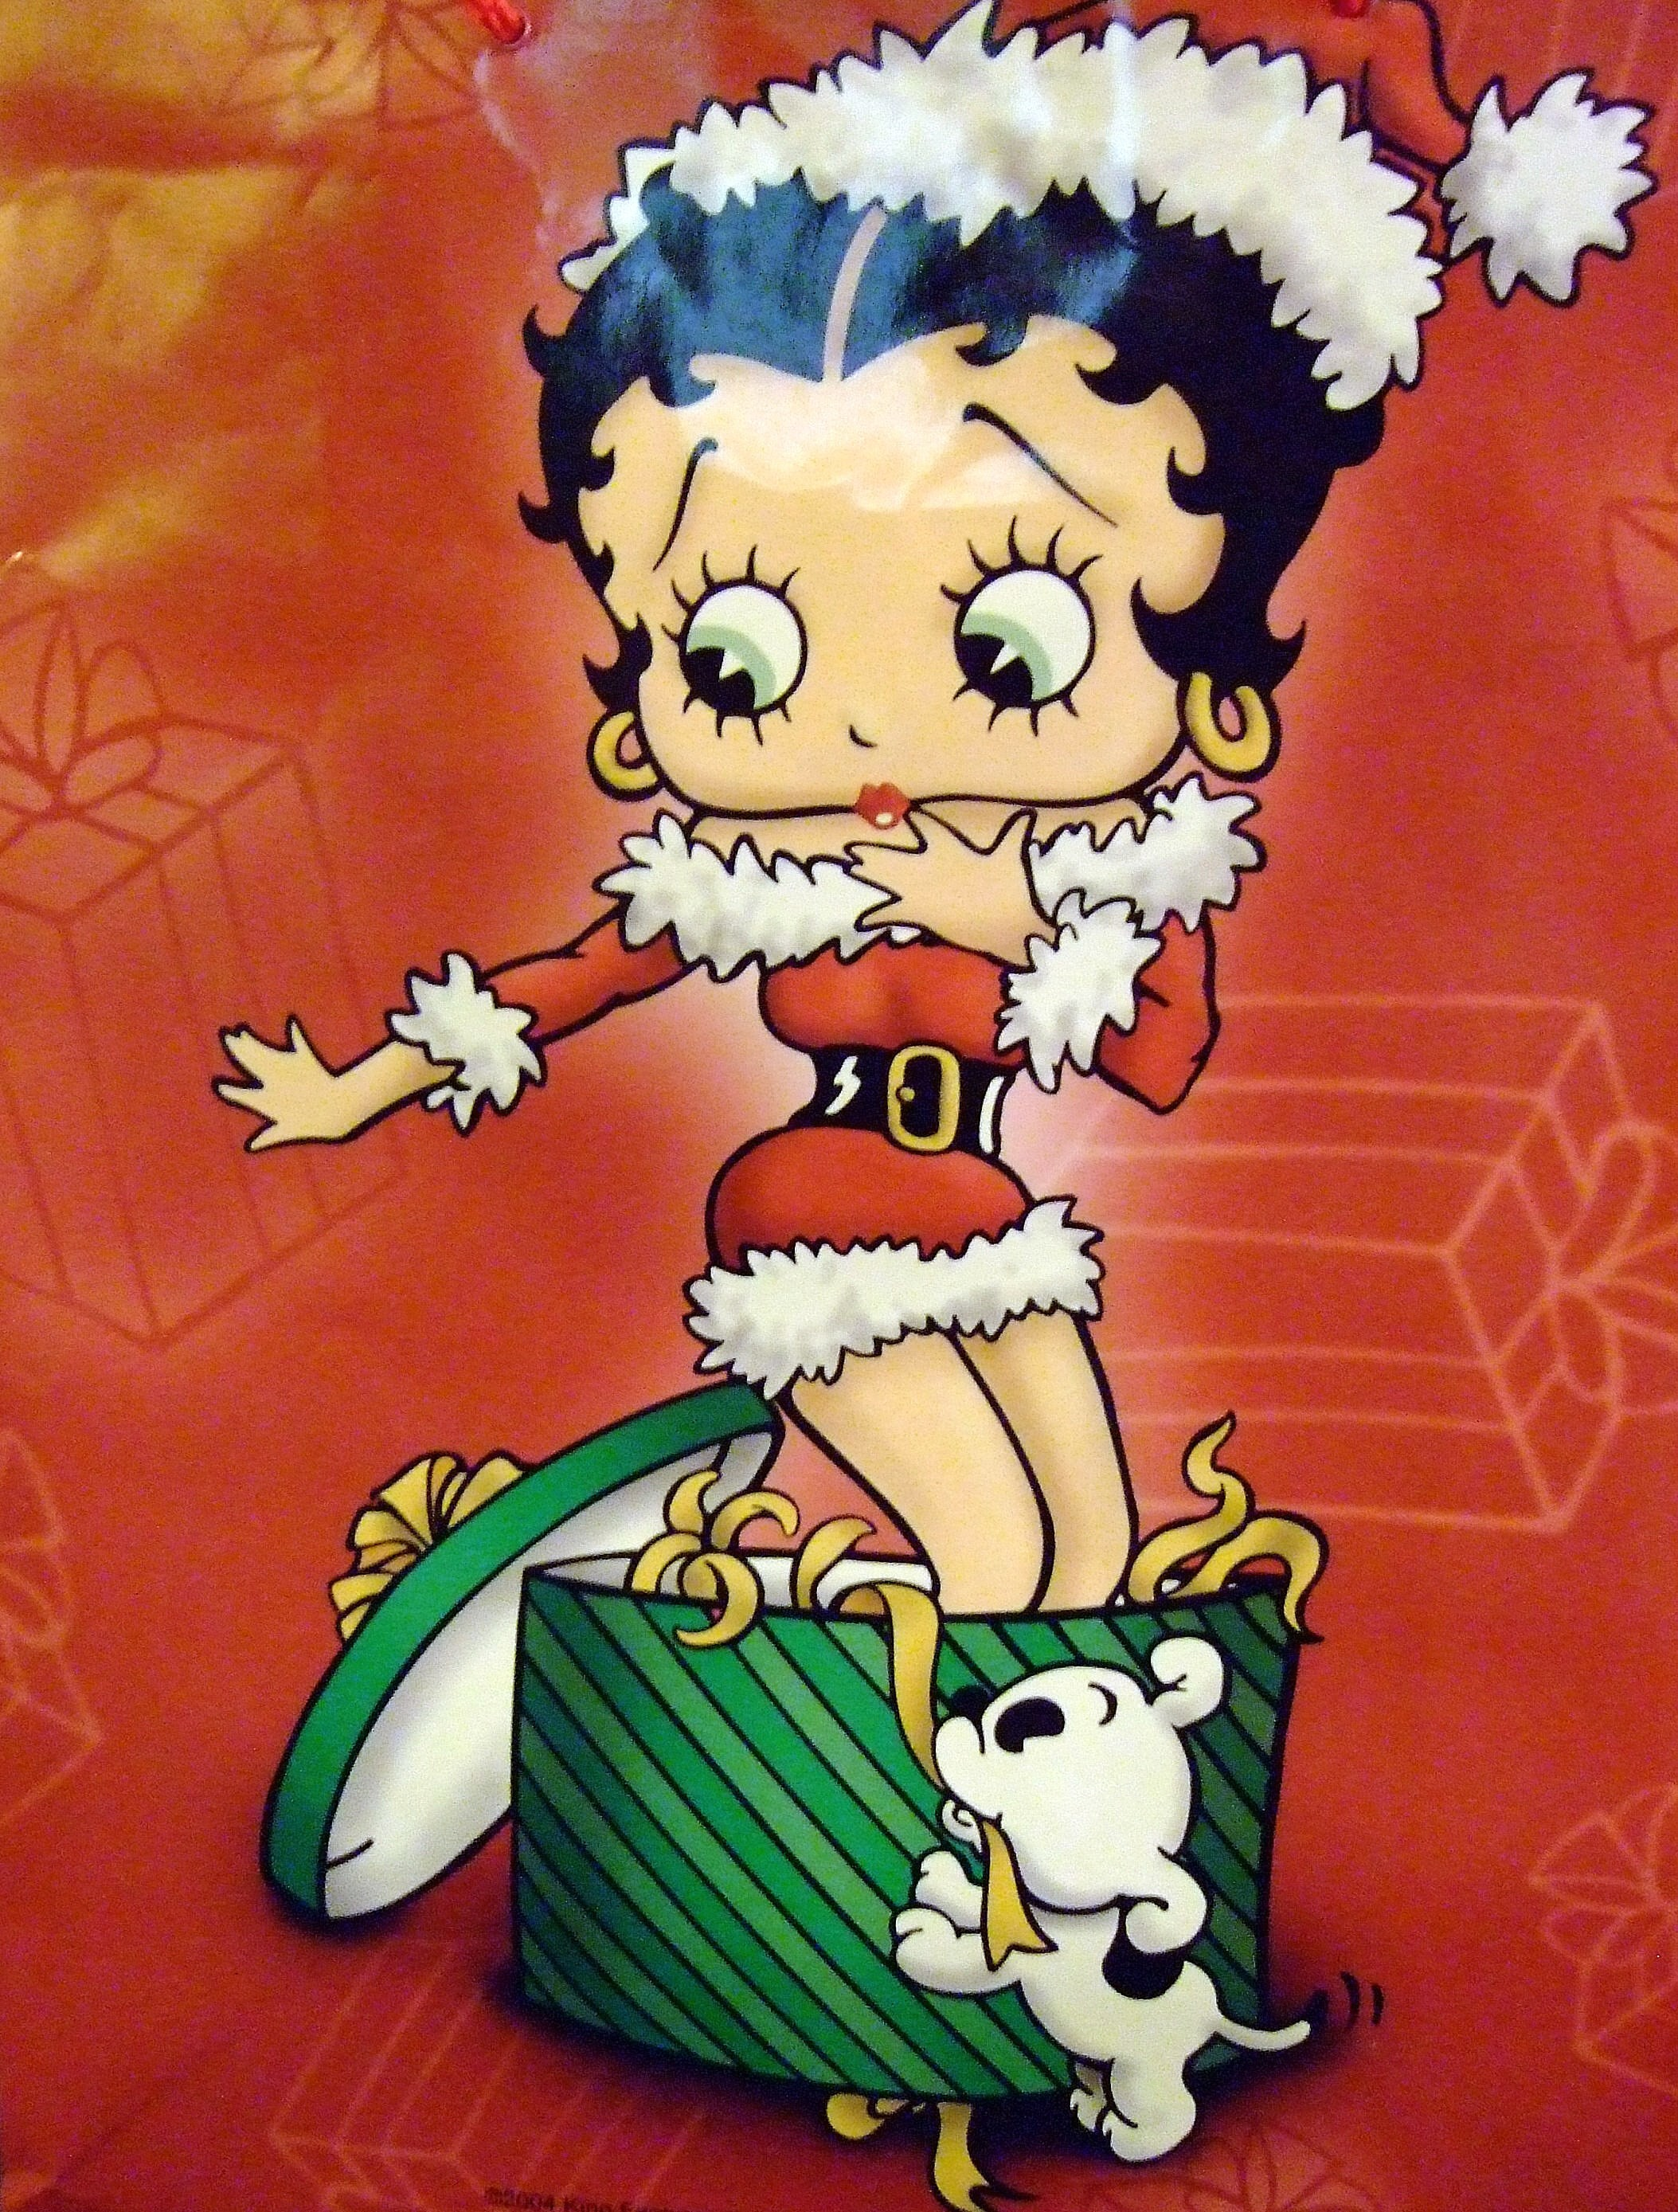 Free download Betty Boop Wallpaper for Phone 41 images ...